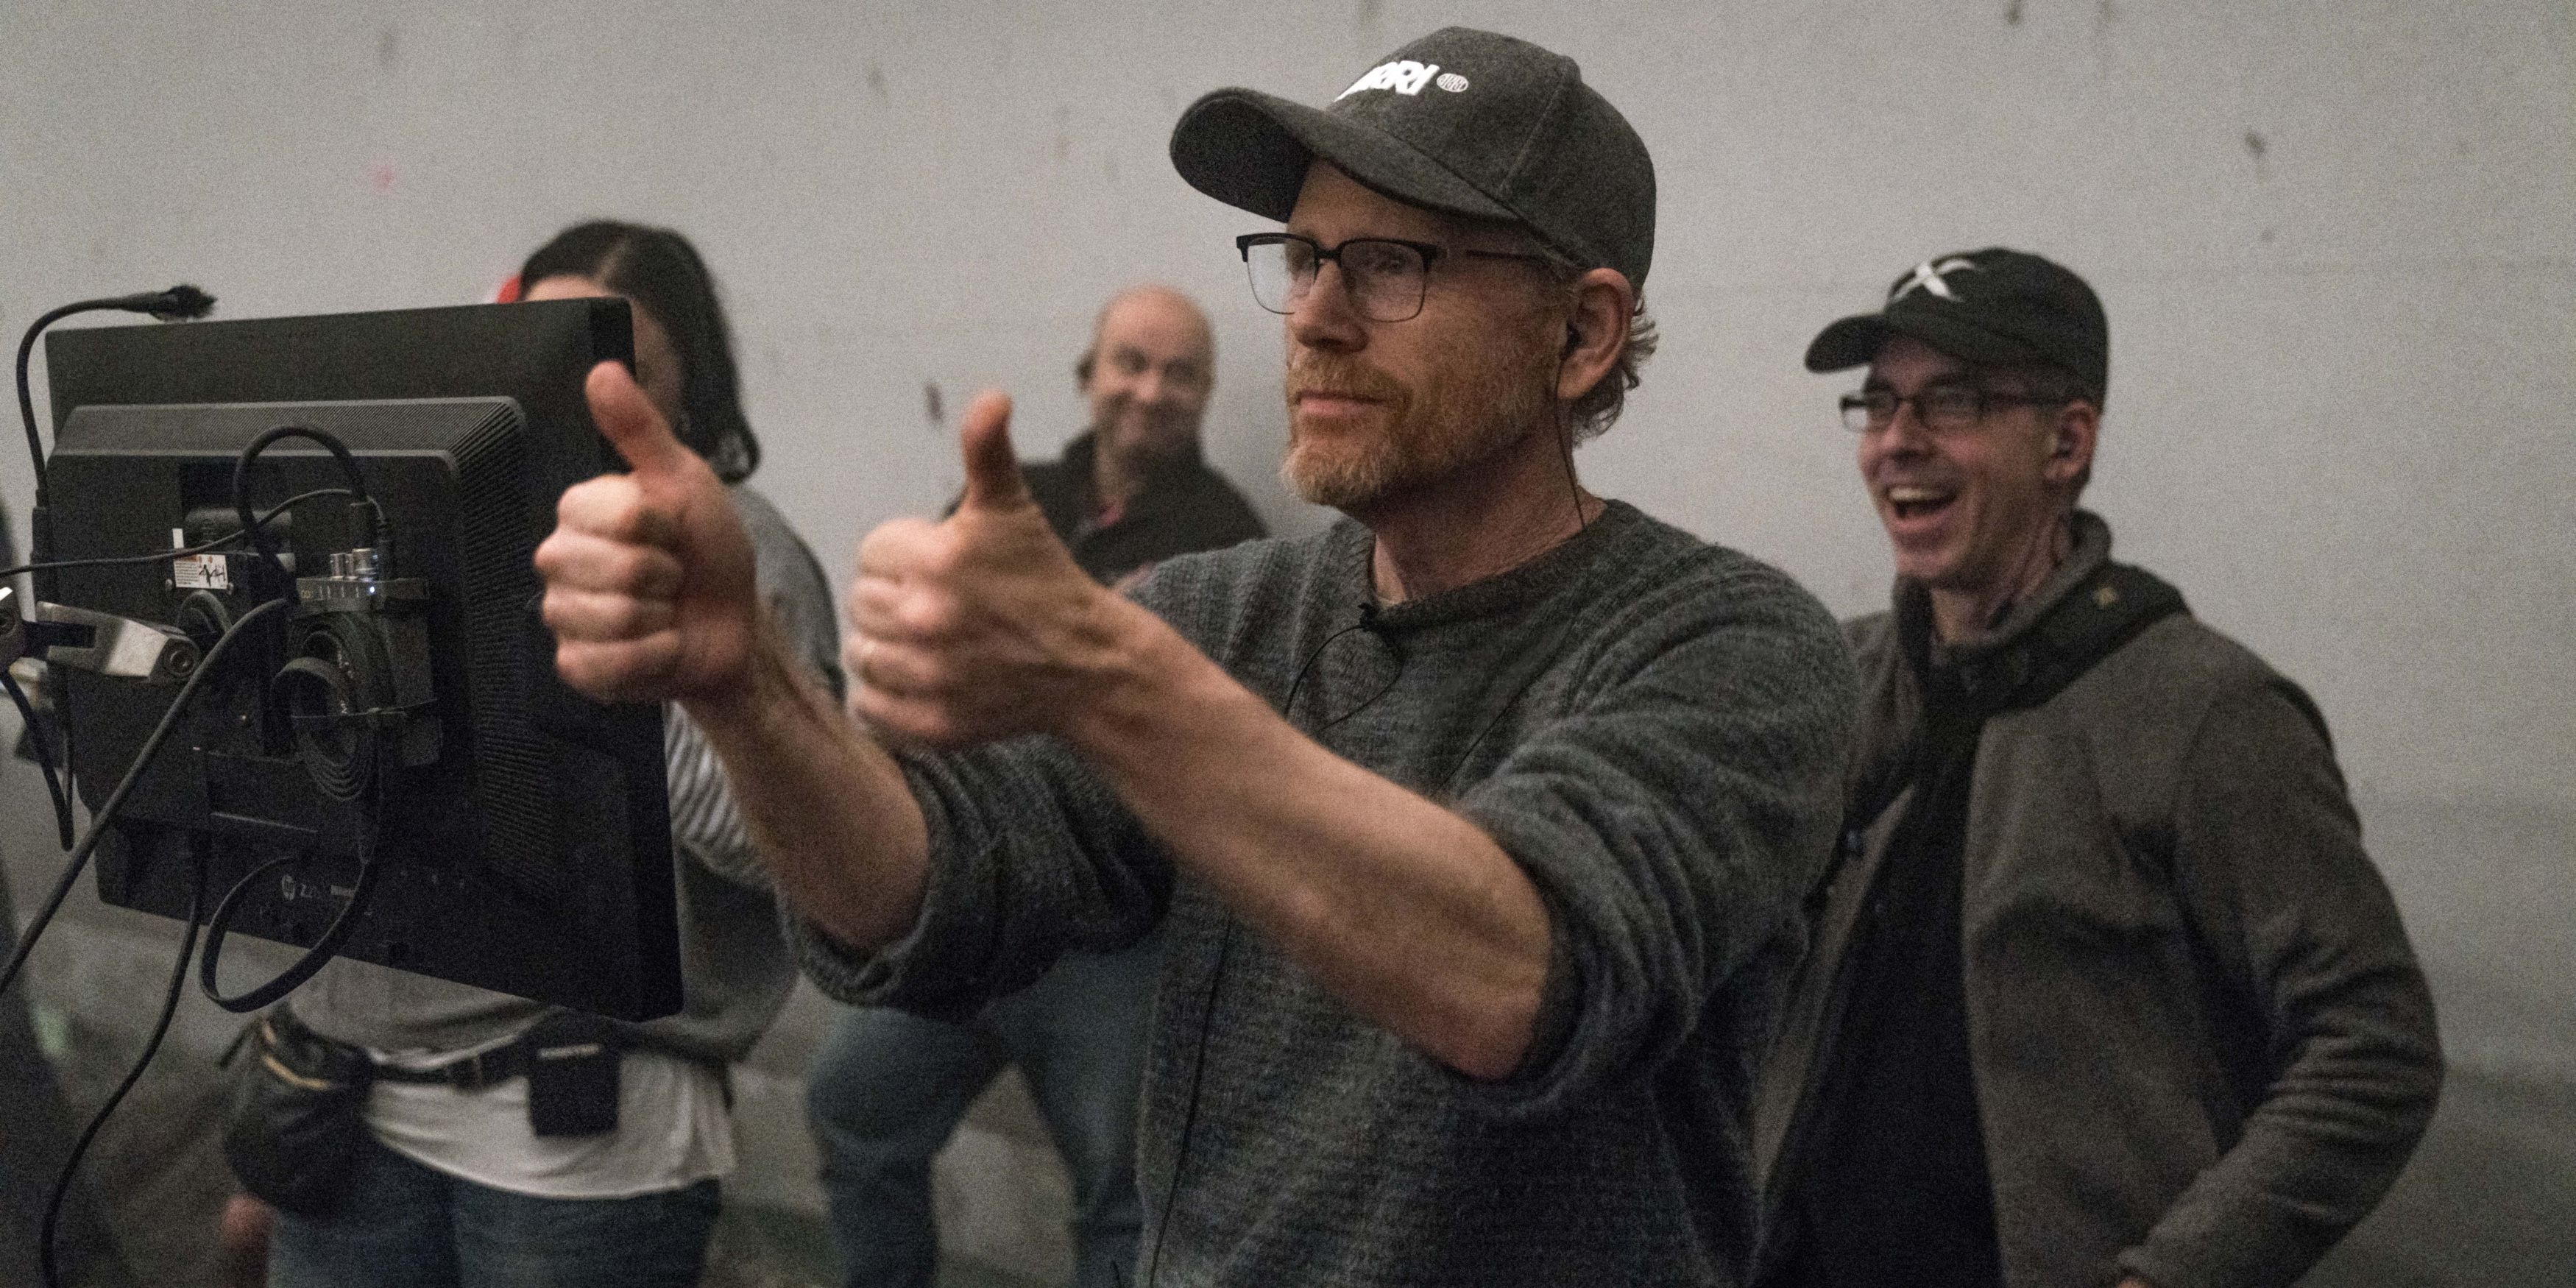 Solo: Ron Howard Interview - Solo: A Star Wars Story